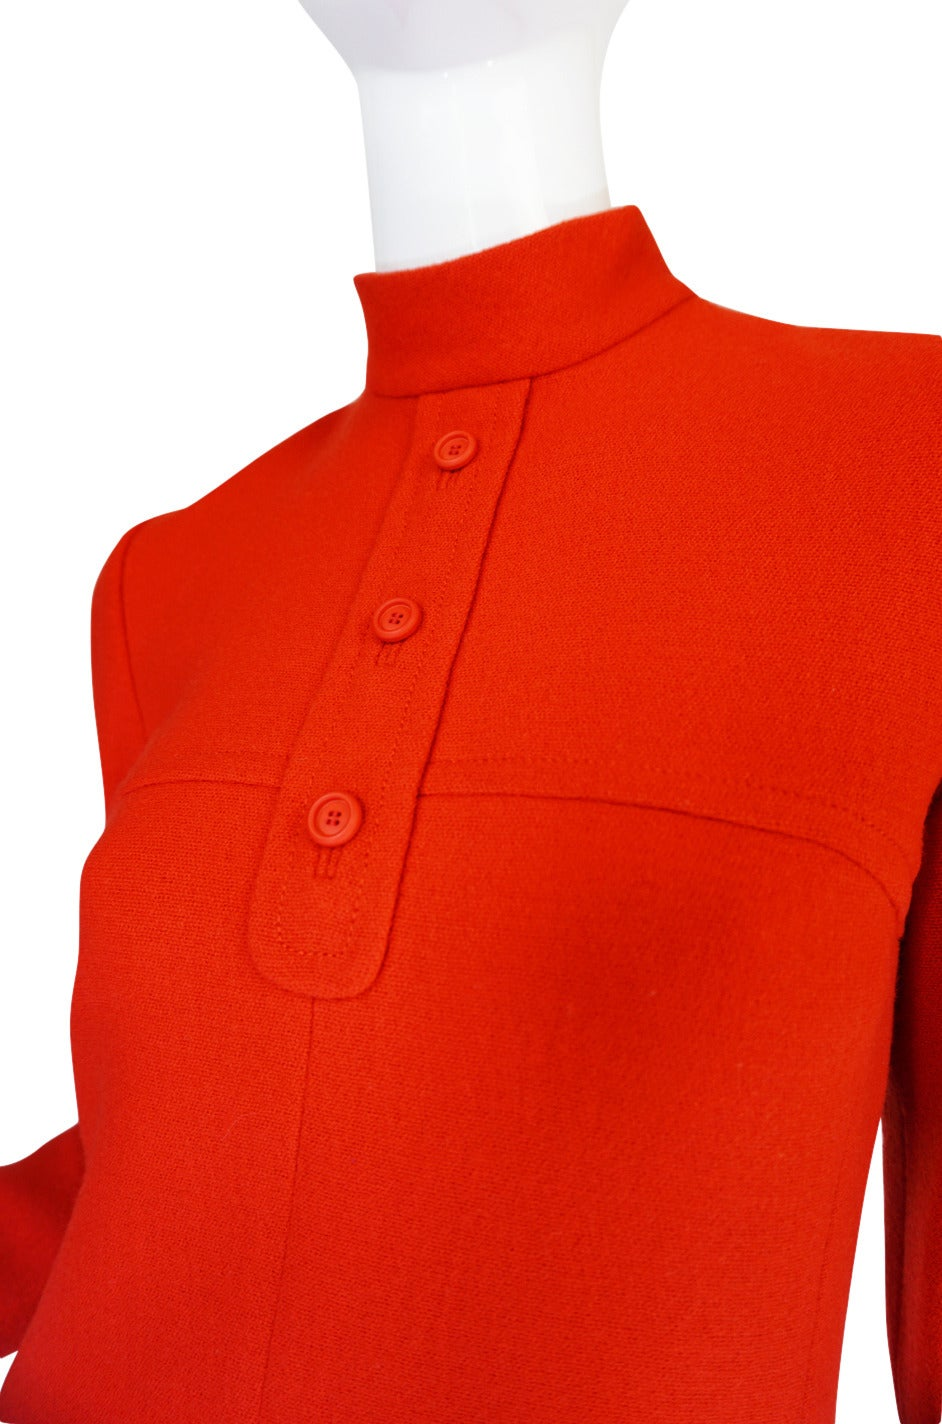 1960s Miss Dior Chic Bright Red Mod Dress For Sale 4